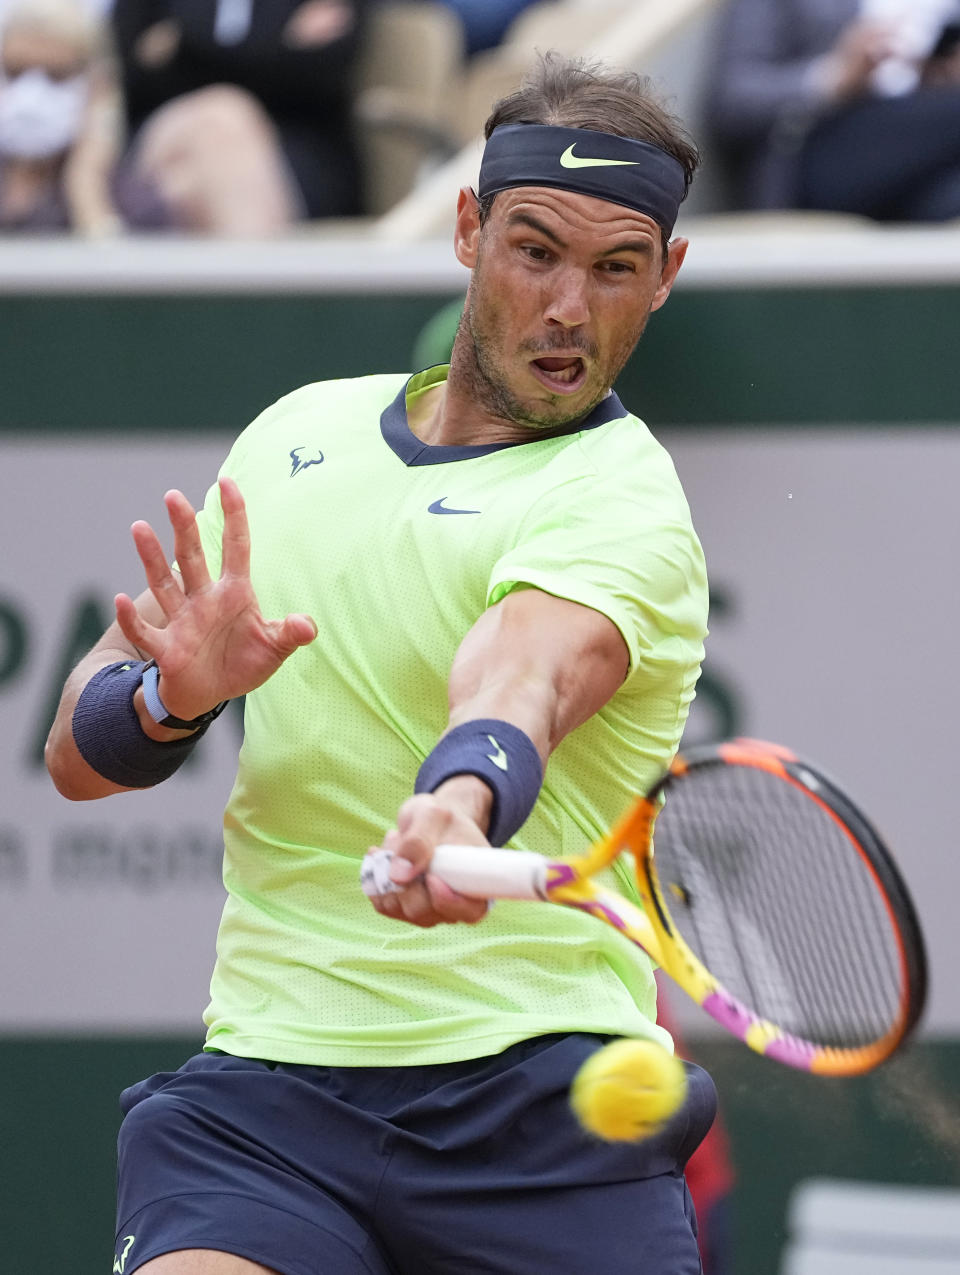 Spain's Rafael Nadal plays a return to Britain's Cameron Norrie during their third round match on day 7, of the French Open tennis tournament at Roland Garros in Paris, France, Saturday, June 5, 2021. (AP Photo/Michel Euler)